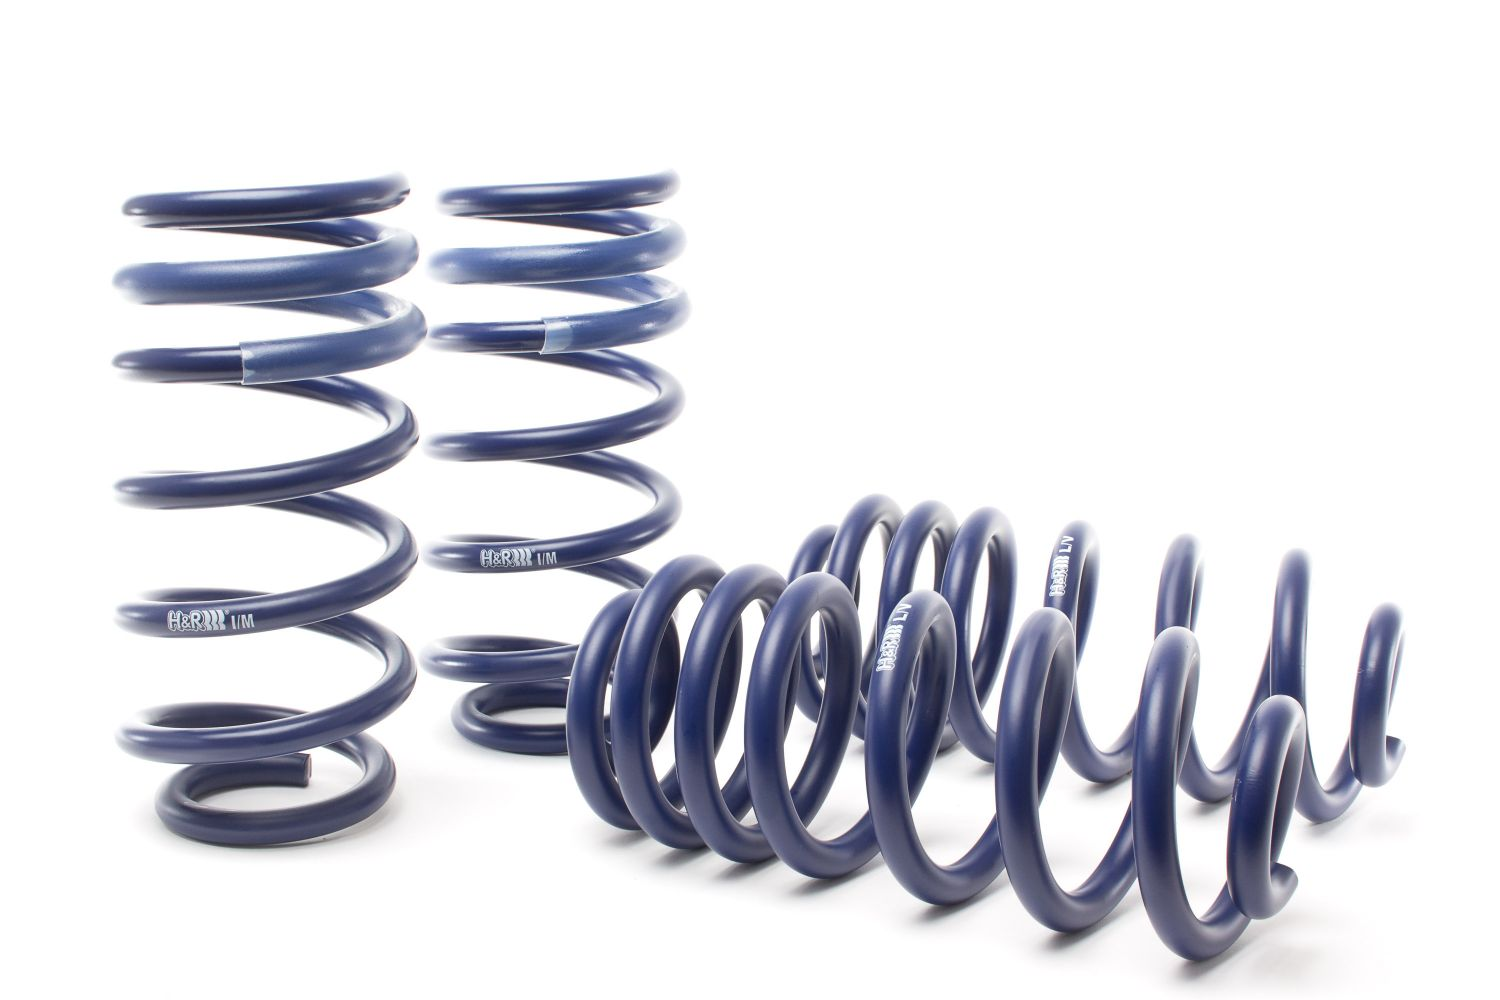 H&R Super Sport Springs for Audi Q5 (FY) | H&R Special